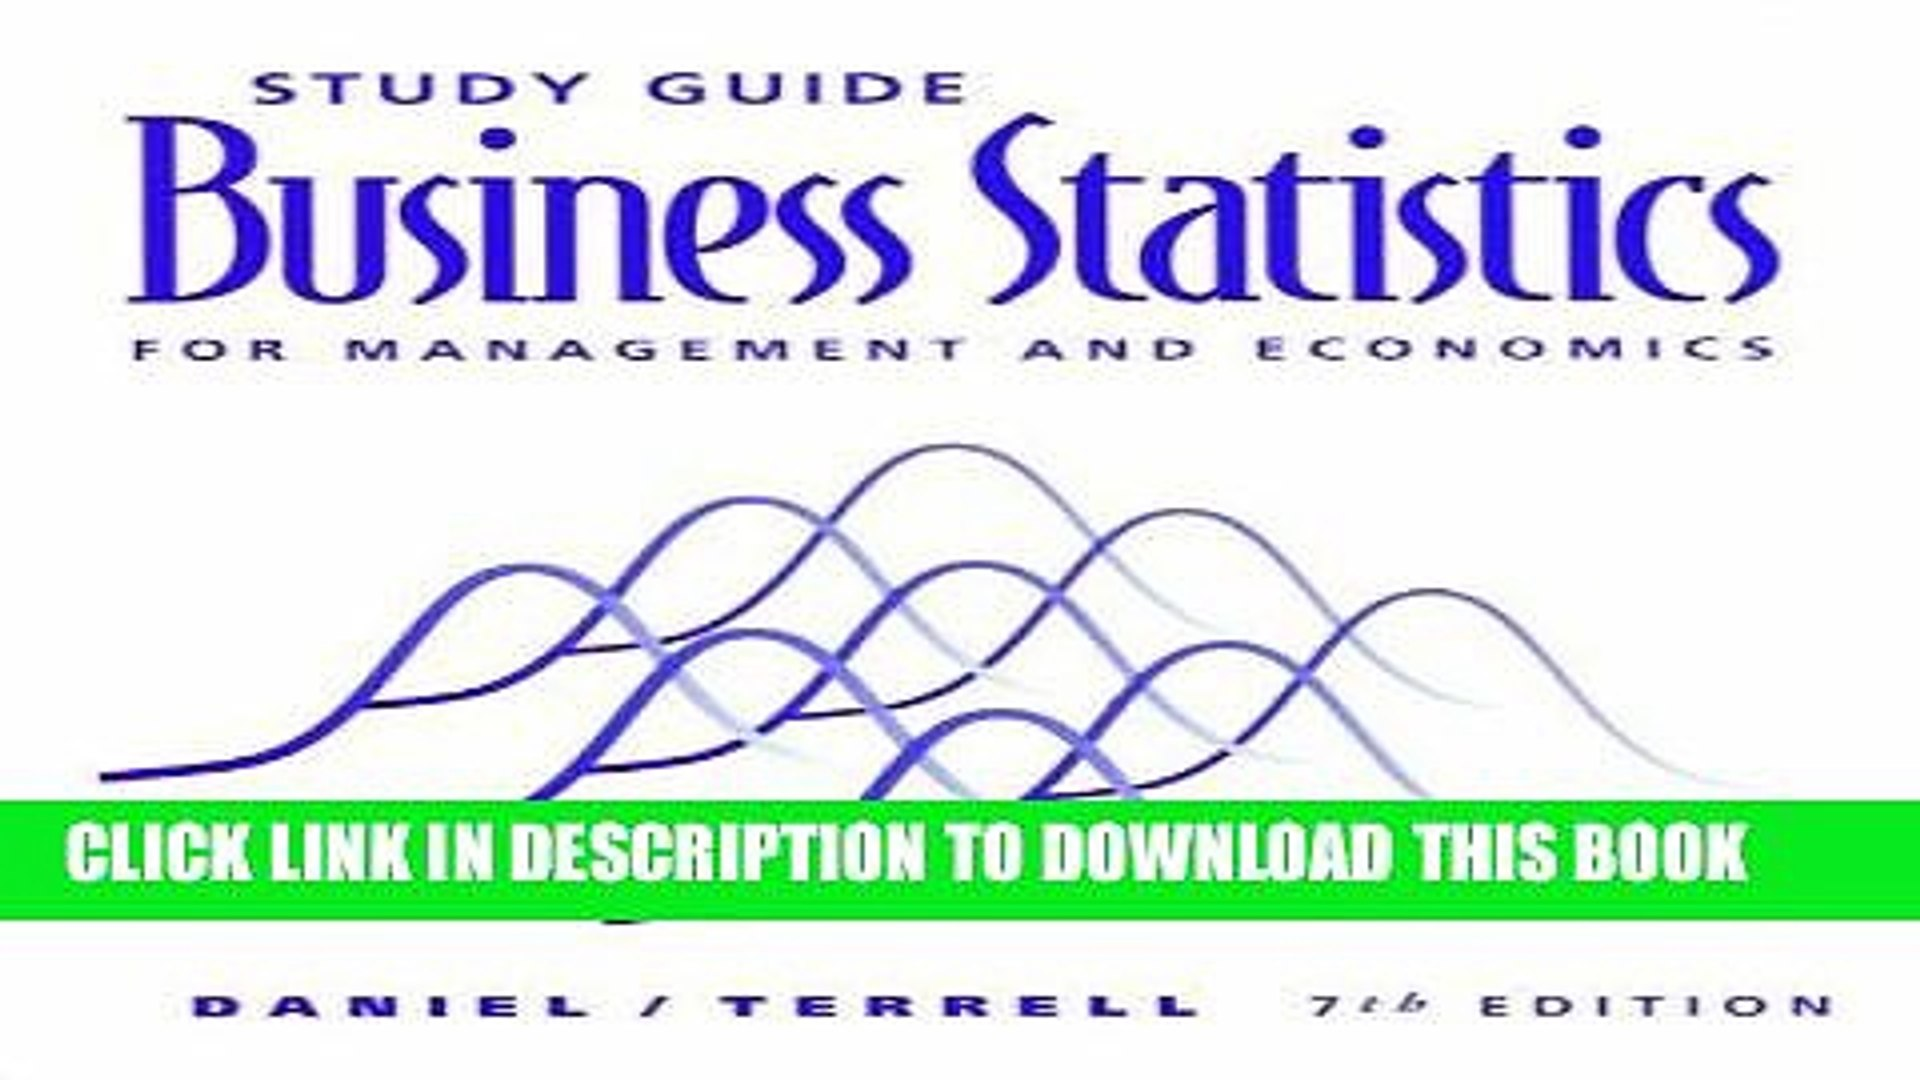 [PDF] Study Guide for Daniel/Terrell s Business Statistics for Management  and Economics, 7th Full